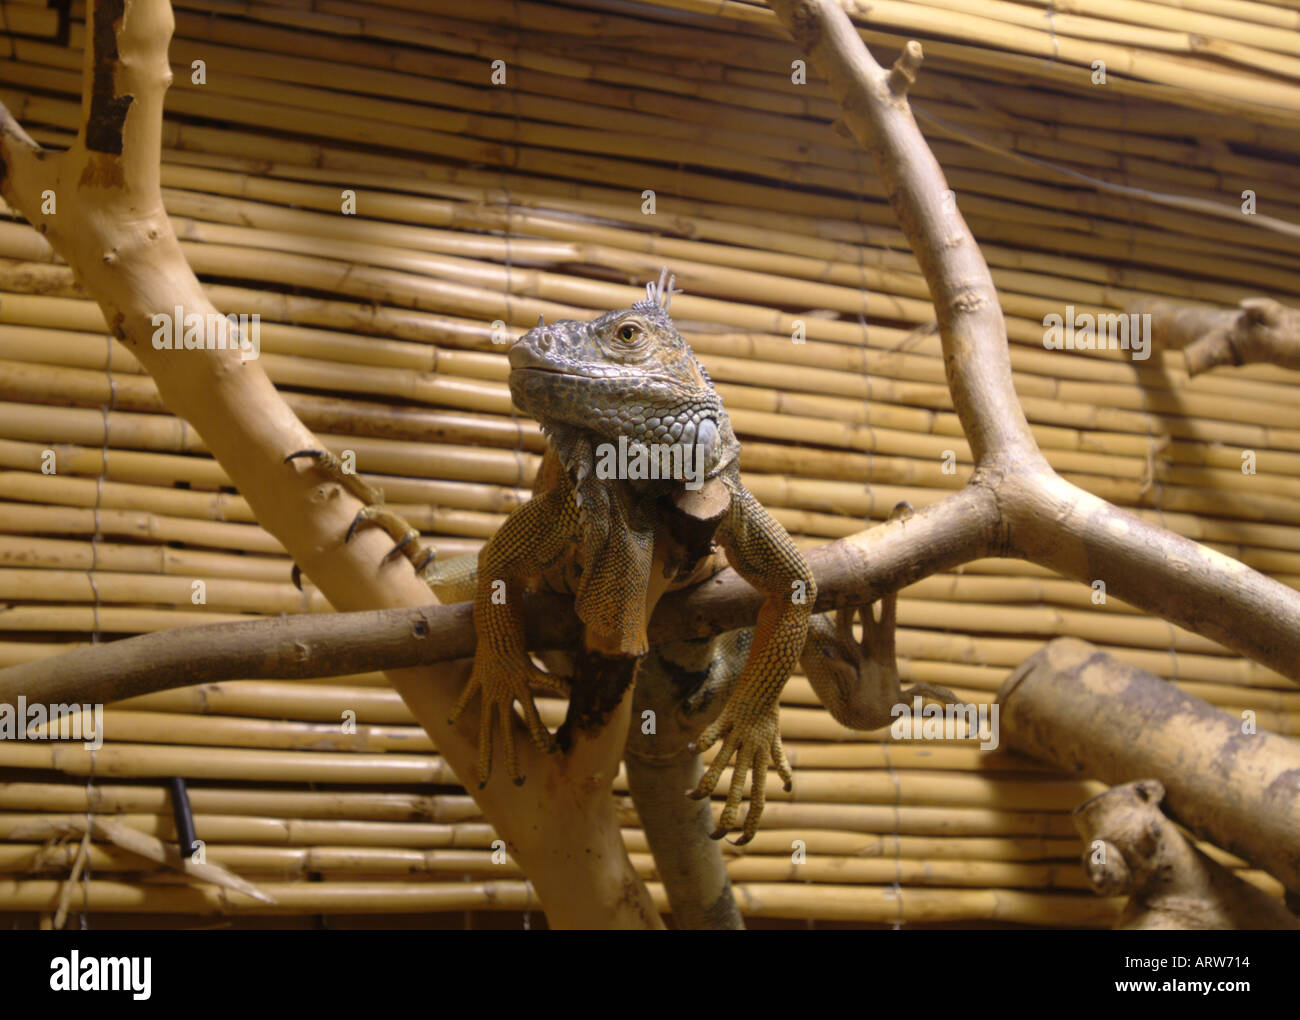 An Iguana hangs loose in the Serpentarium on Skye Scotland Stock Photo